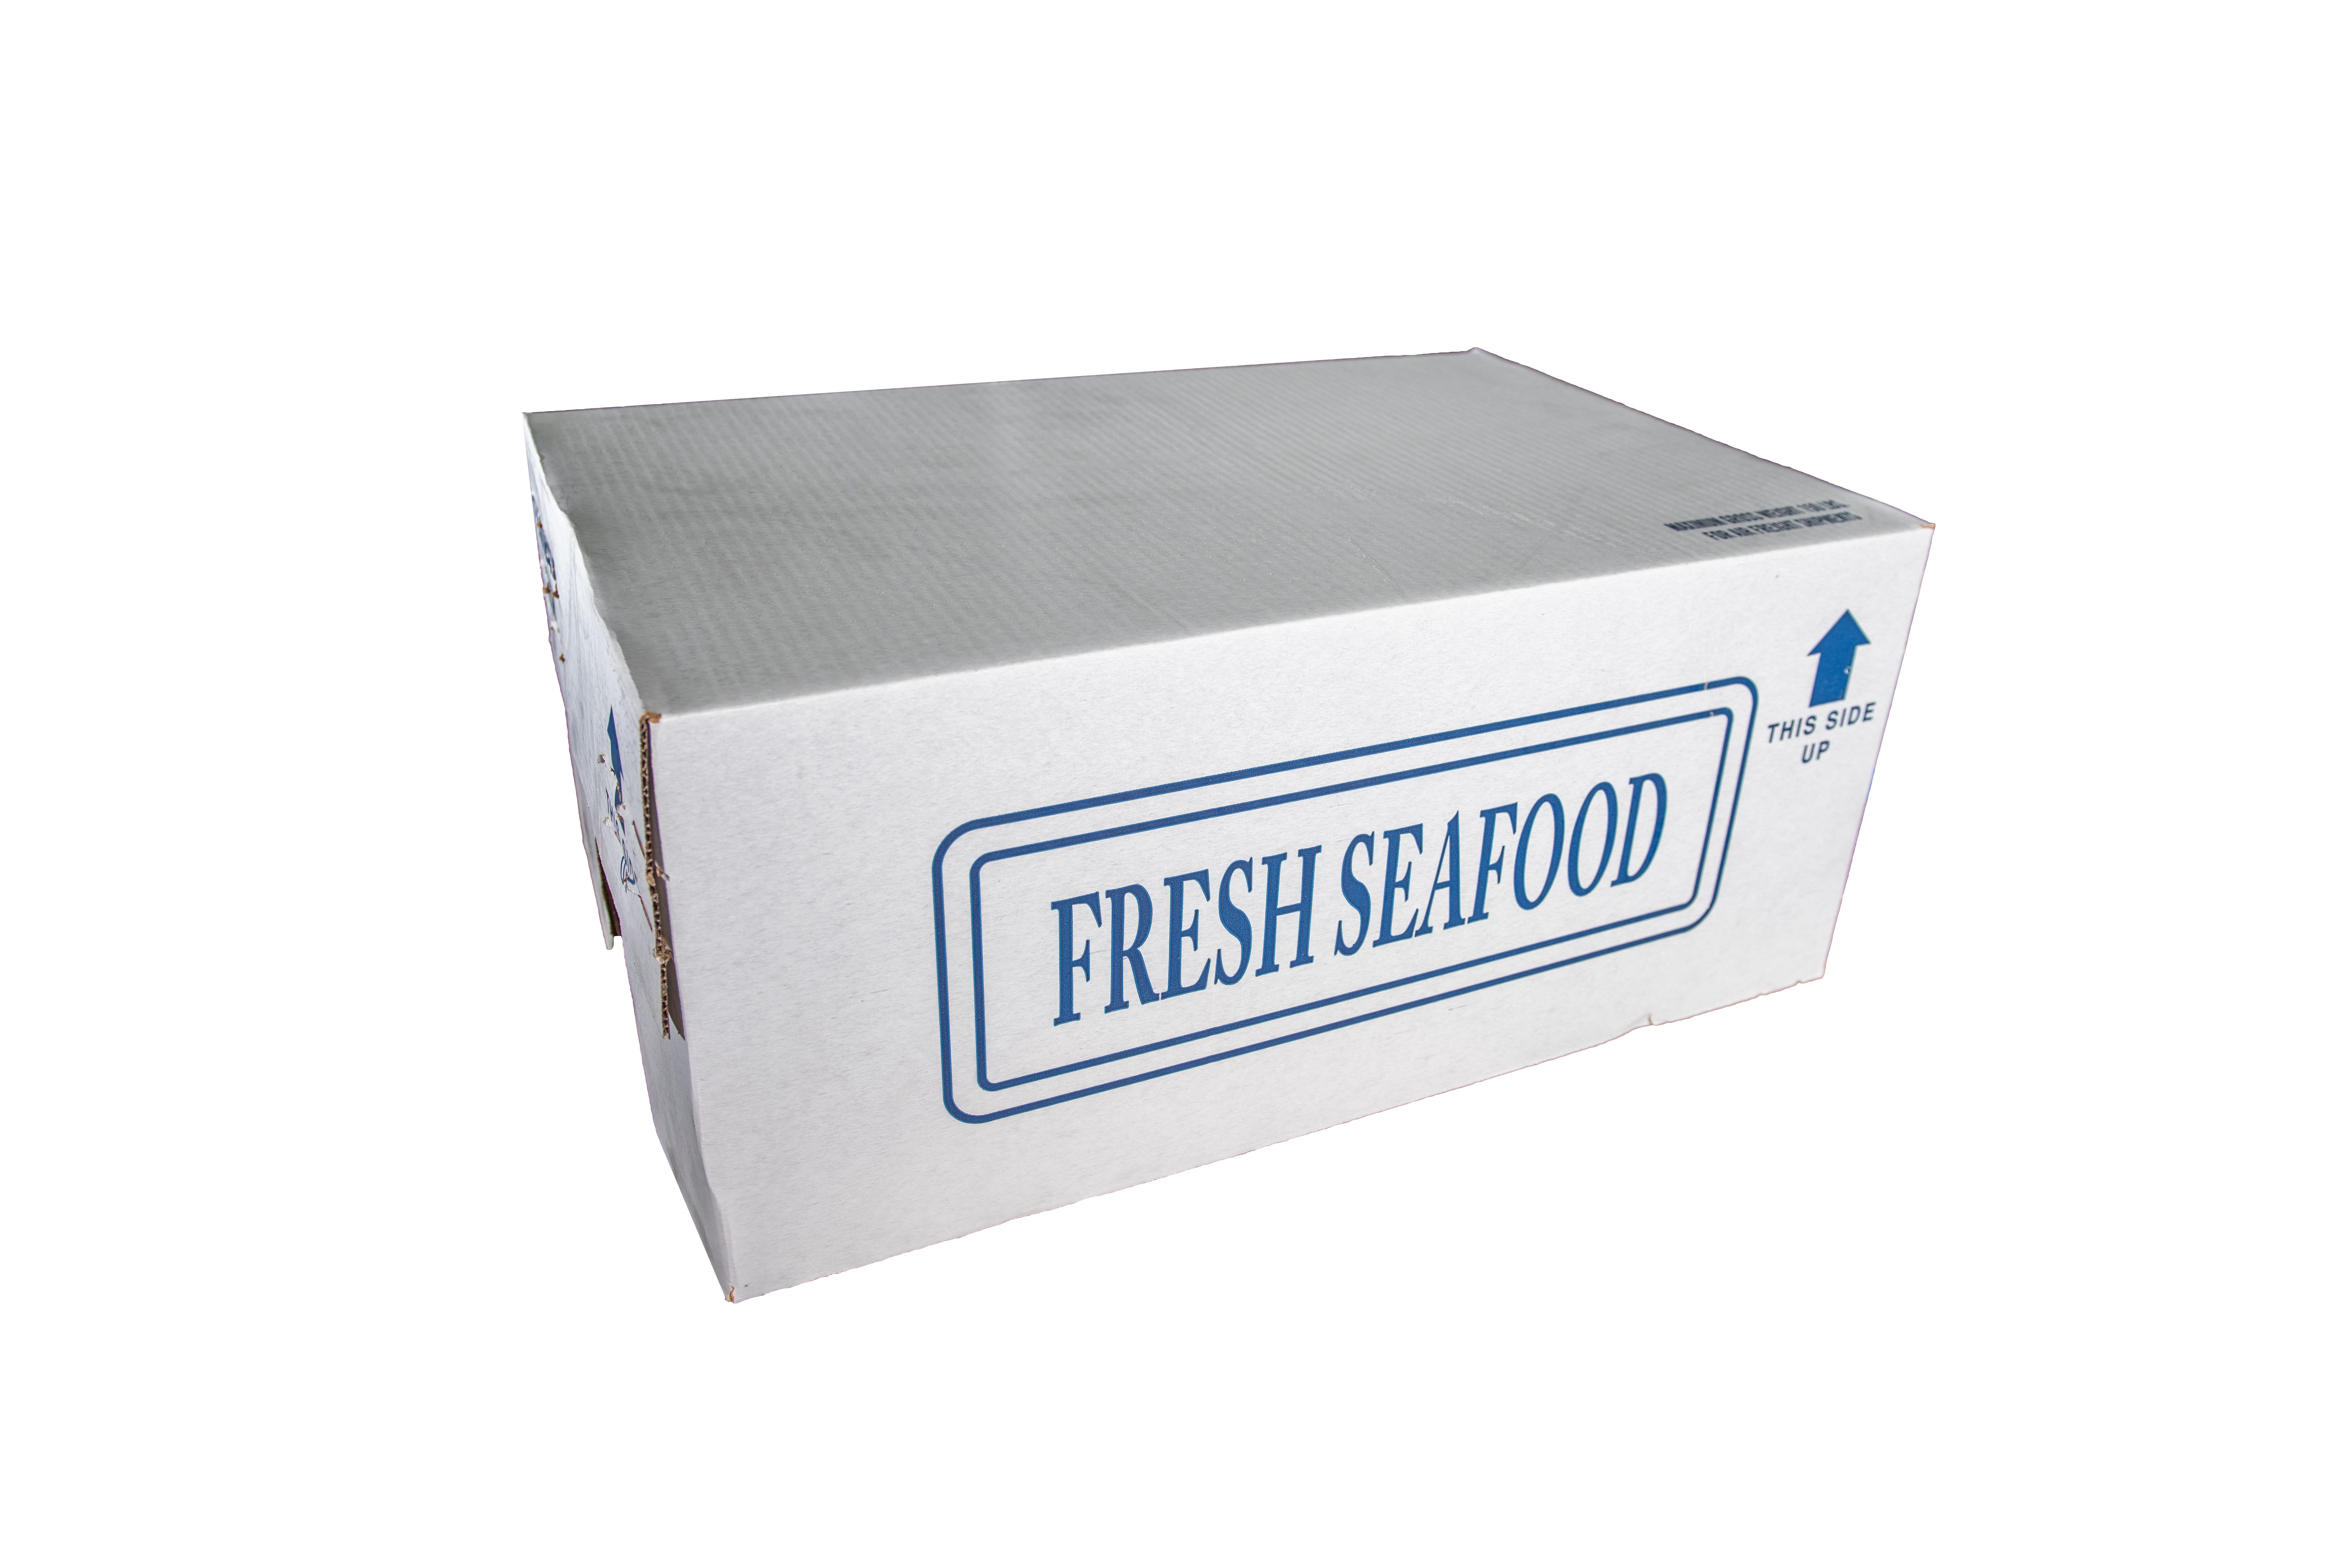 Wax Seafood and Corrugated Boxes Langing Page - Skips Marine